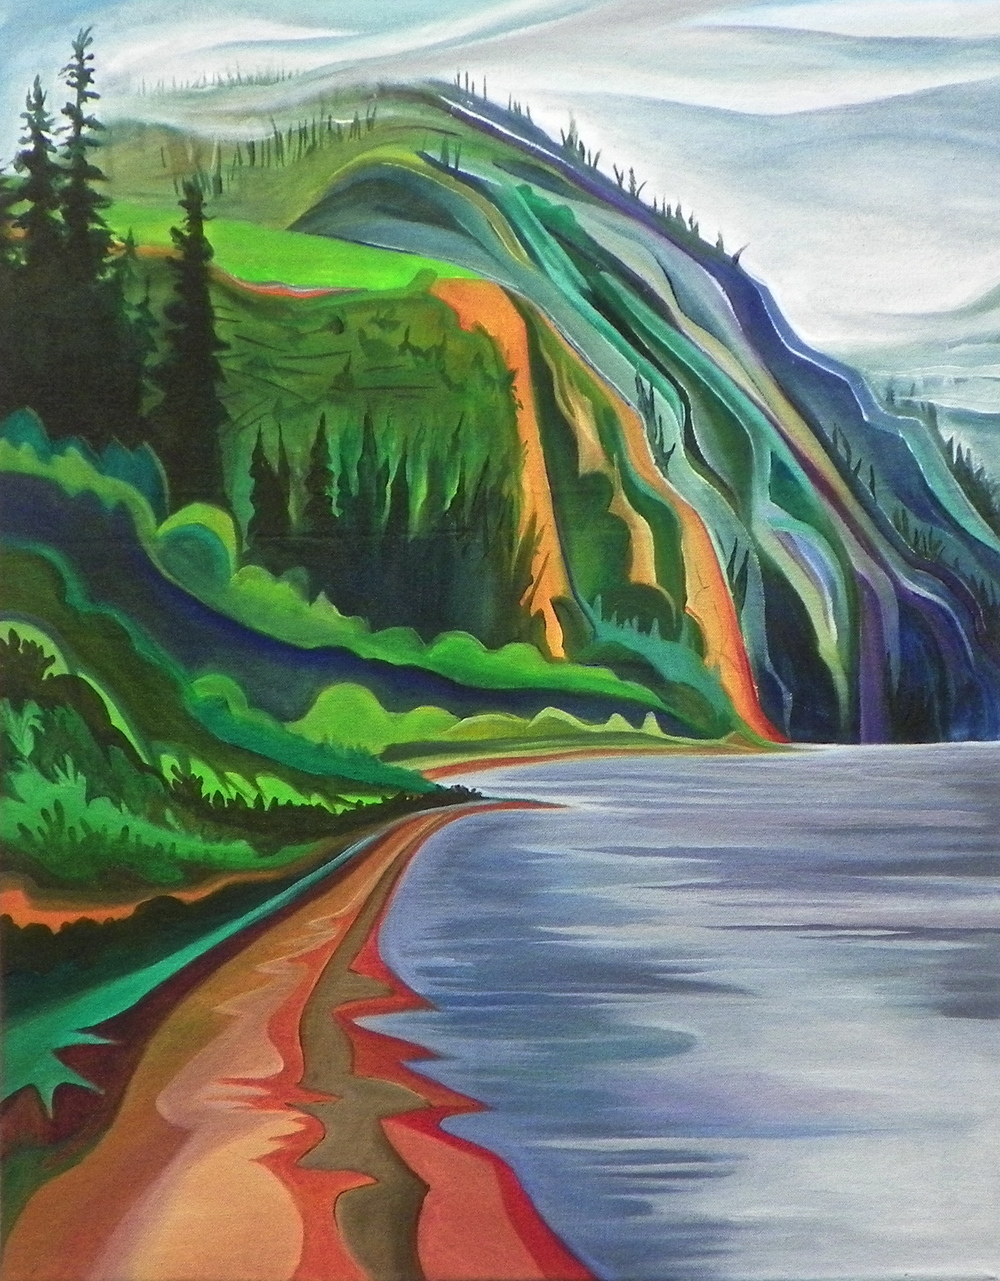 "On the Bank -   Acrylic   on canvas - 28"" x 22"" - 2012"